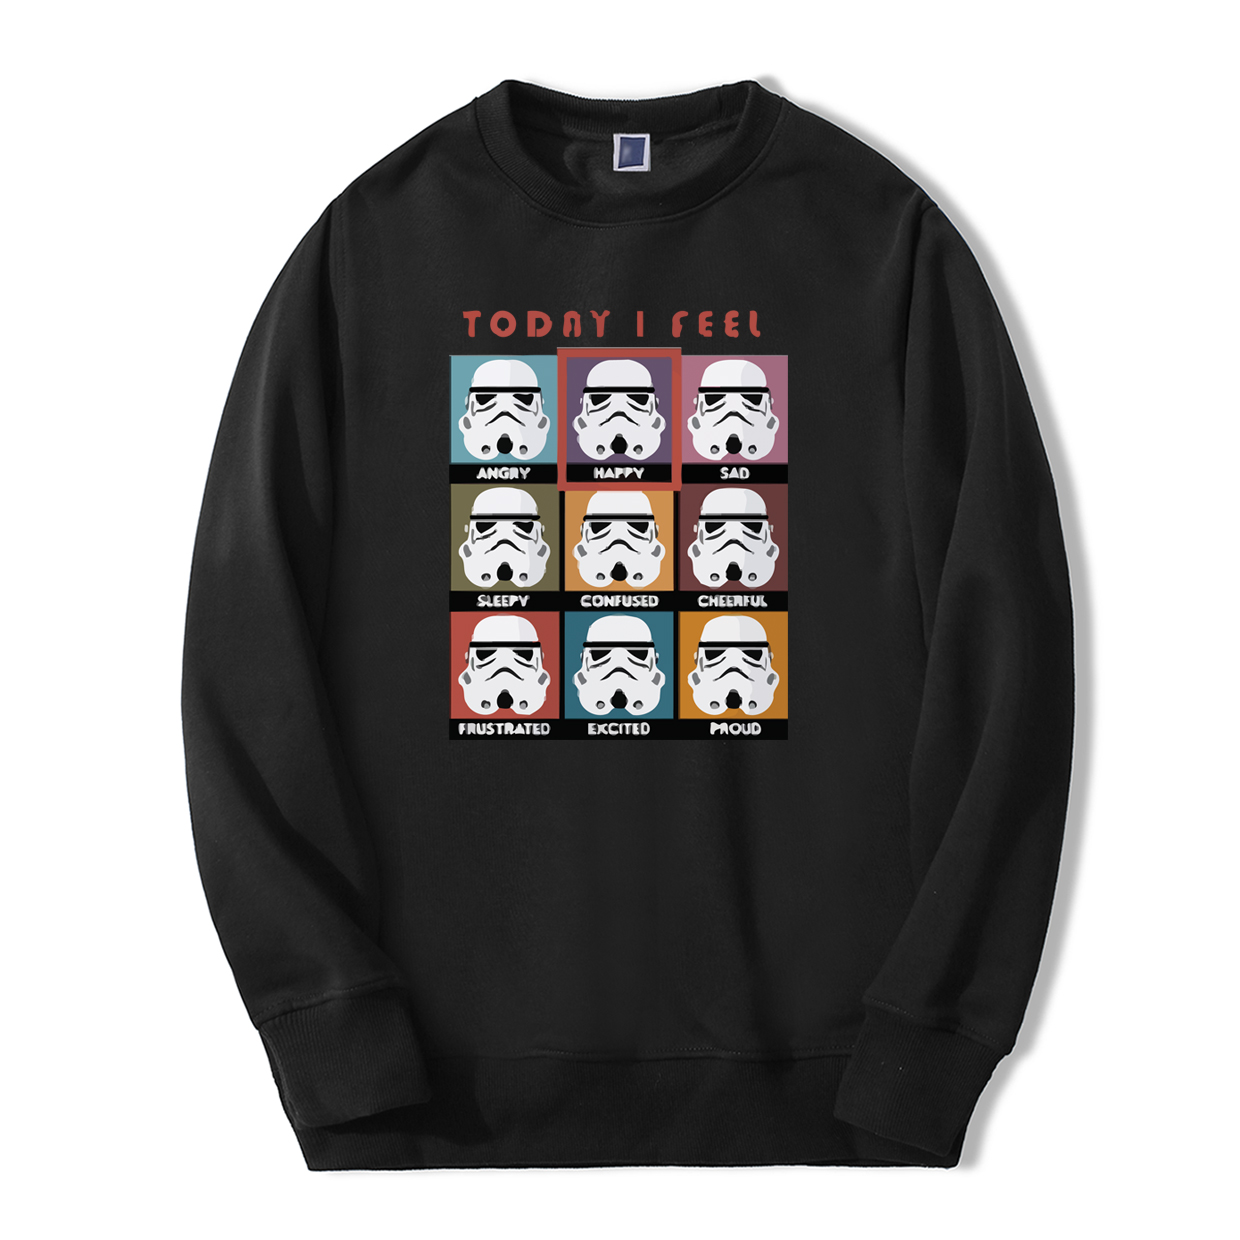 Fashion Today I Fell Happy Star Wars Hoodies Men 2019 Spring Winter Men Sweatshirt Fleece Tracksuit Warm fitness casual pullover